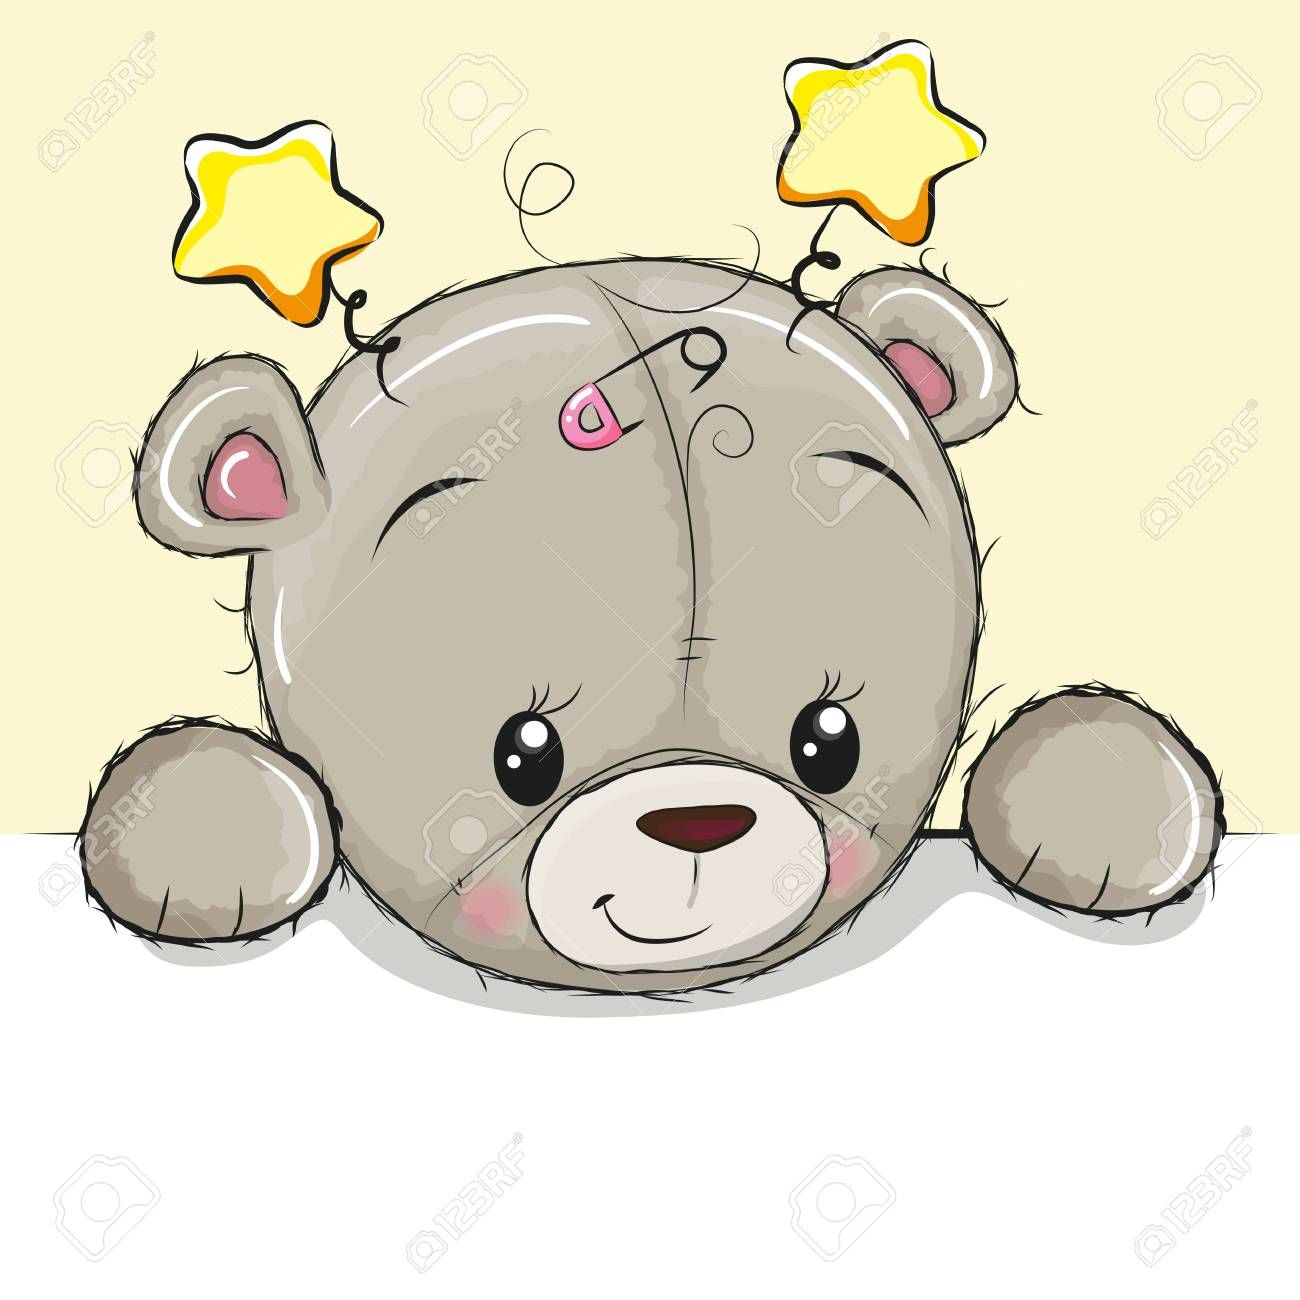 Cute Drawing Teddy Bear On A Yellow Background Teddy Bear Drawing Cute Drawings Teddy Drawing